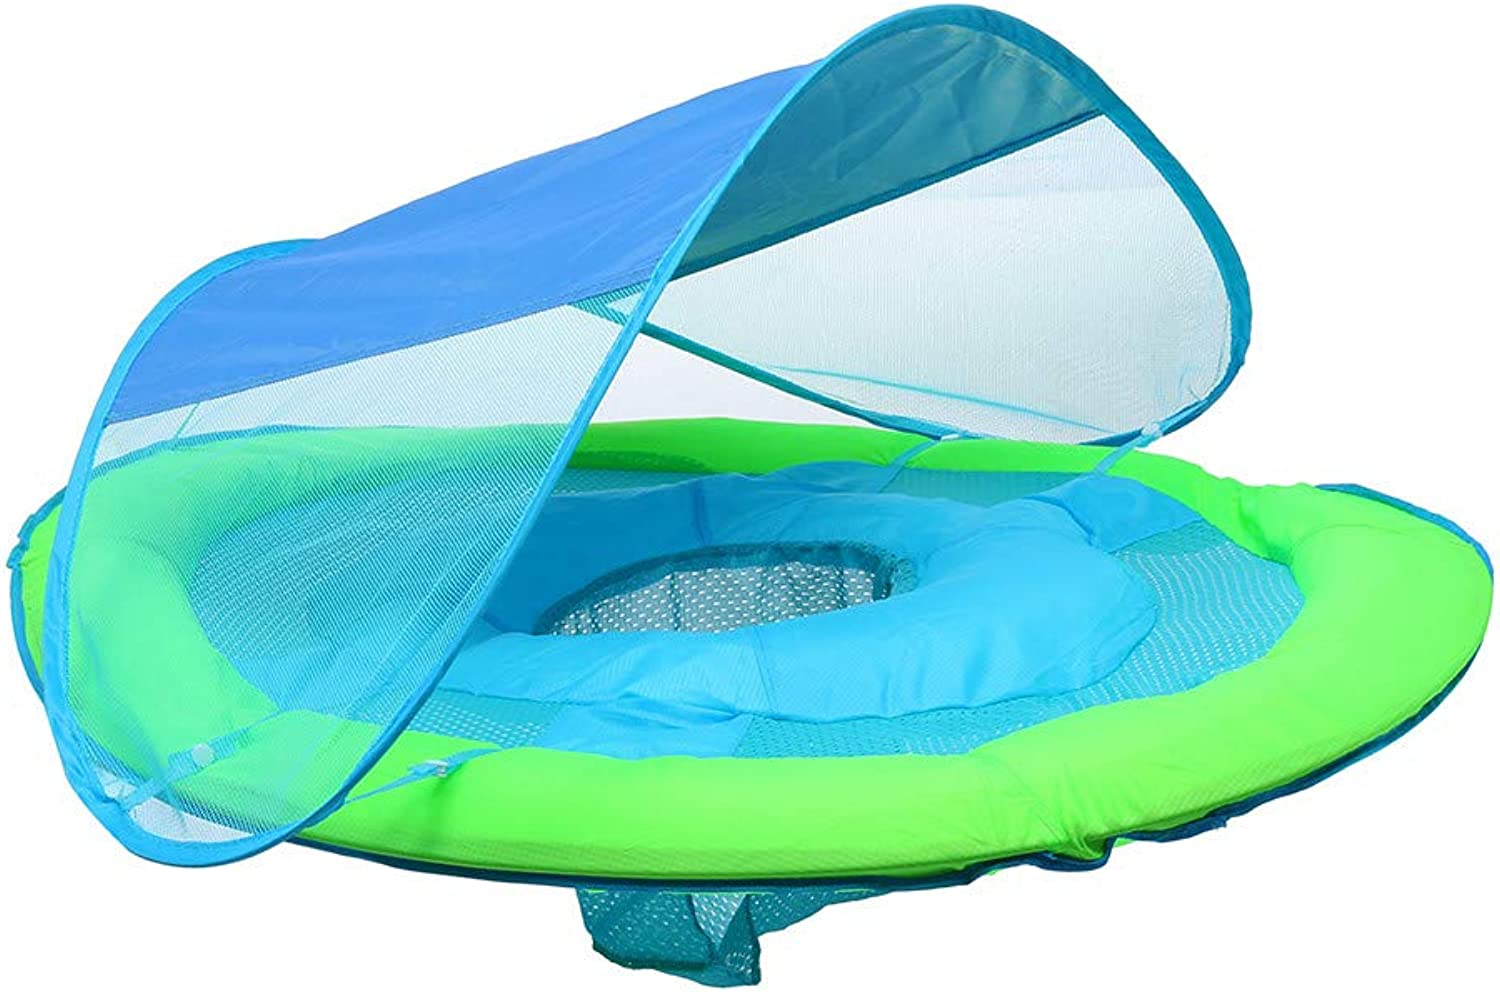 Chezaa Inflatable Fun Baby Boat, Swimming Ring, Splash and Play, Safety Seat, Extra-Wide Inflatable Pool Float, UPF 50 Retractable Canopy for Kids Aged 9-36 Months, bluee (bluee)